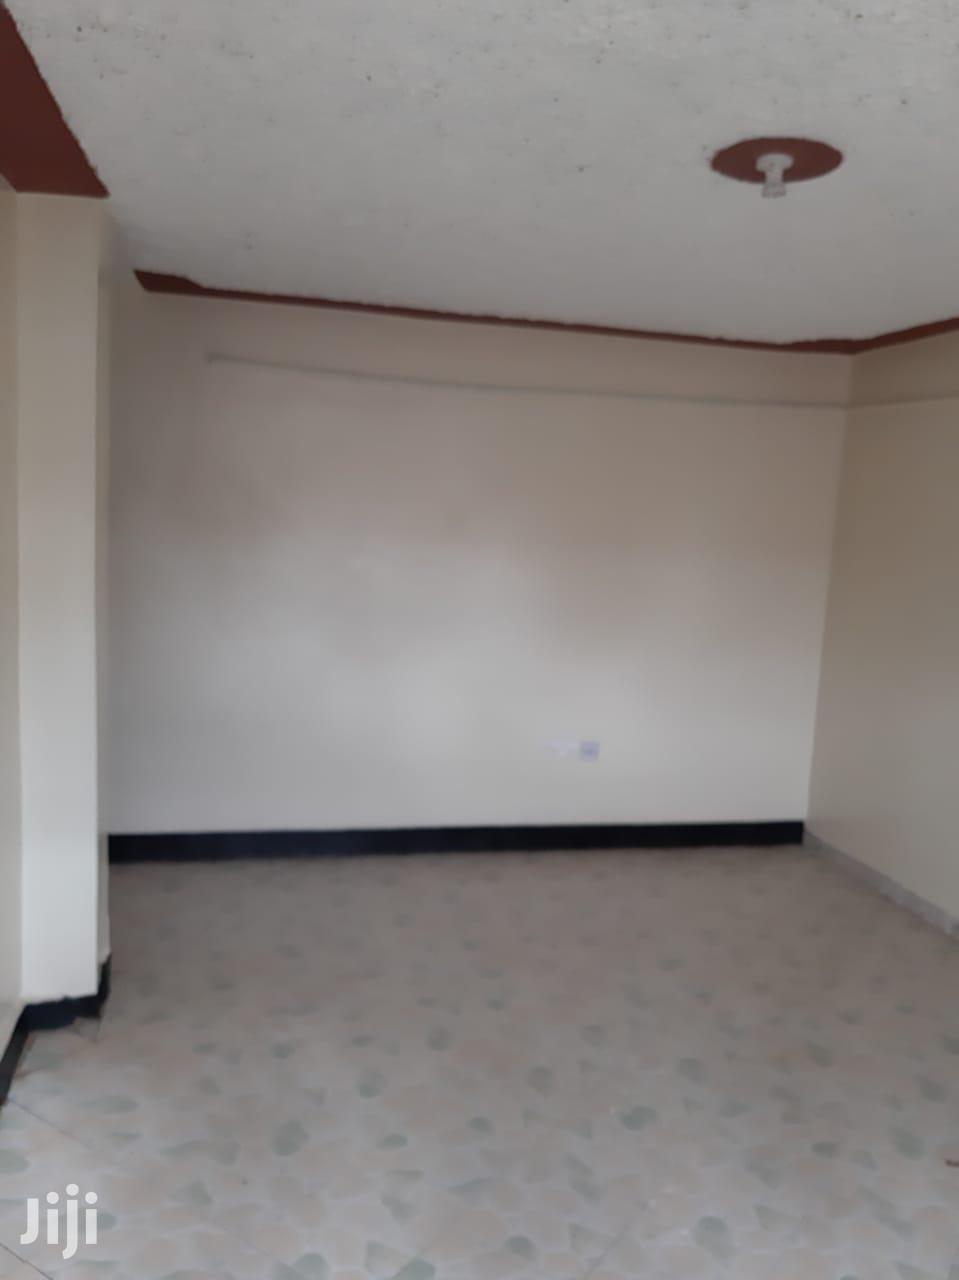 One Bedroomed House | Houses & Apartments For Rent for sale in Kasarani, Nairobi, Kenya